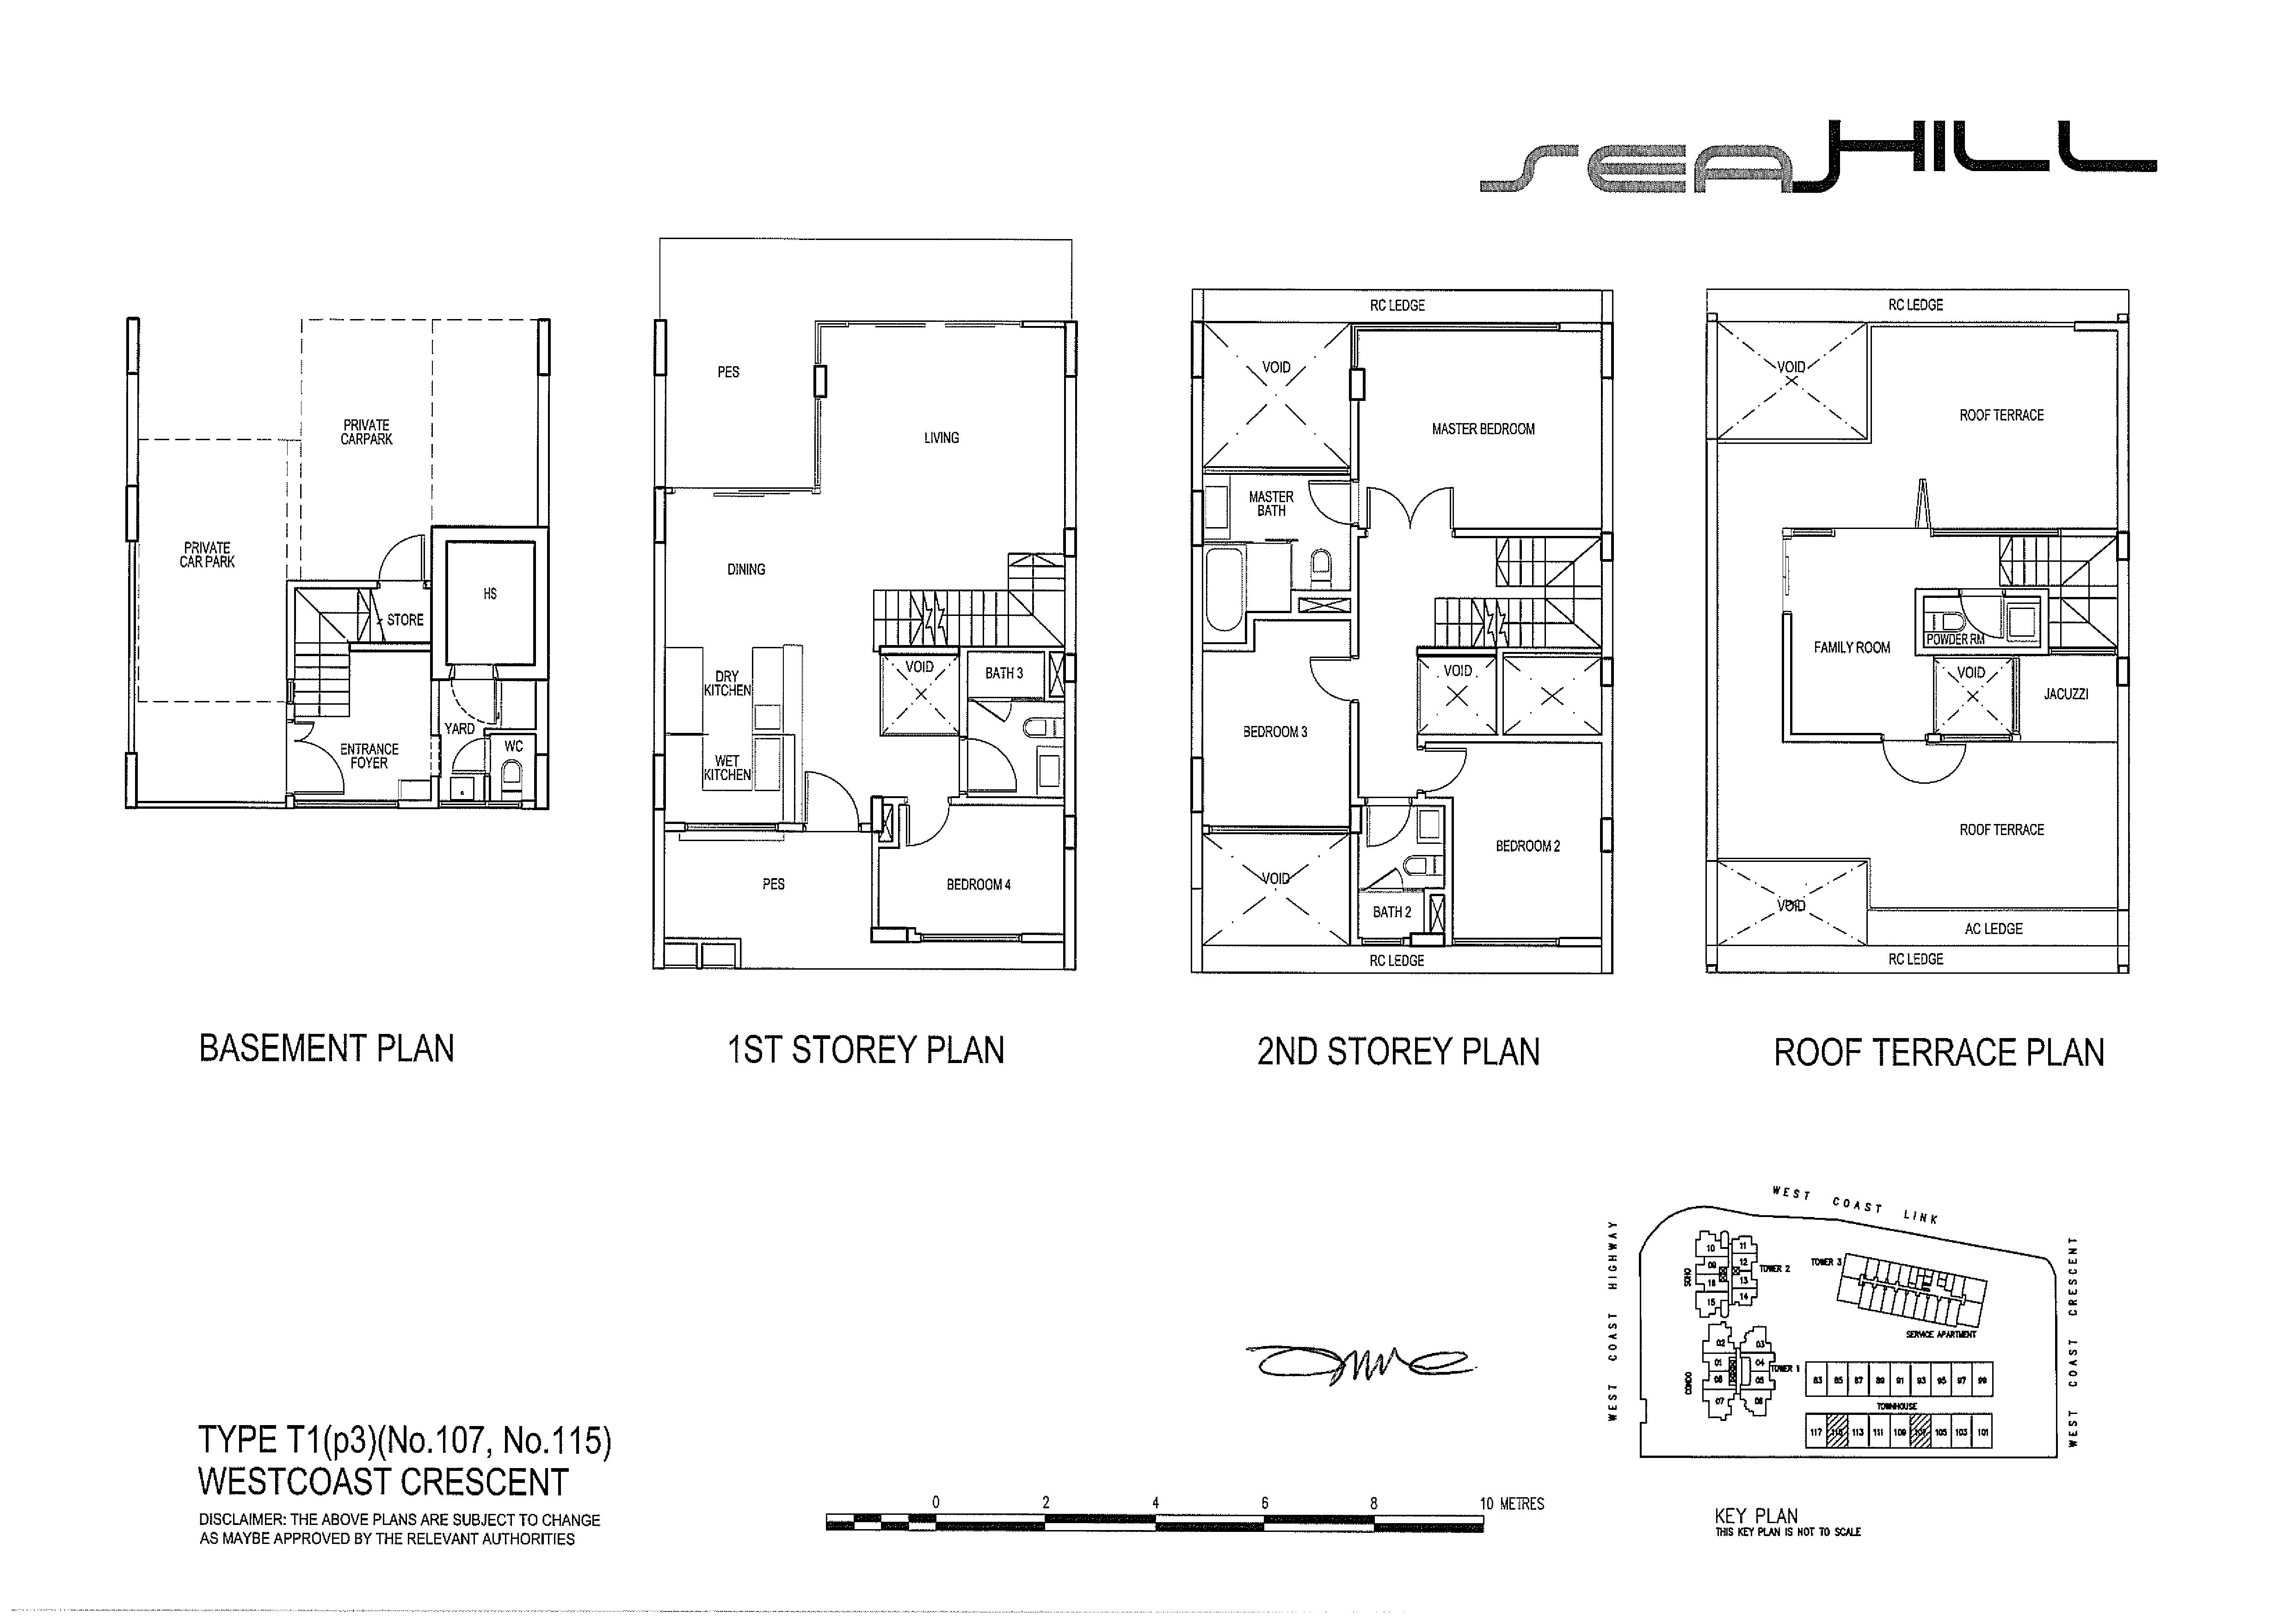 Seahill 4 Bedroom Townhouse Type T1(p3) (No.107, No.115) Floor Plans